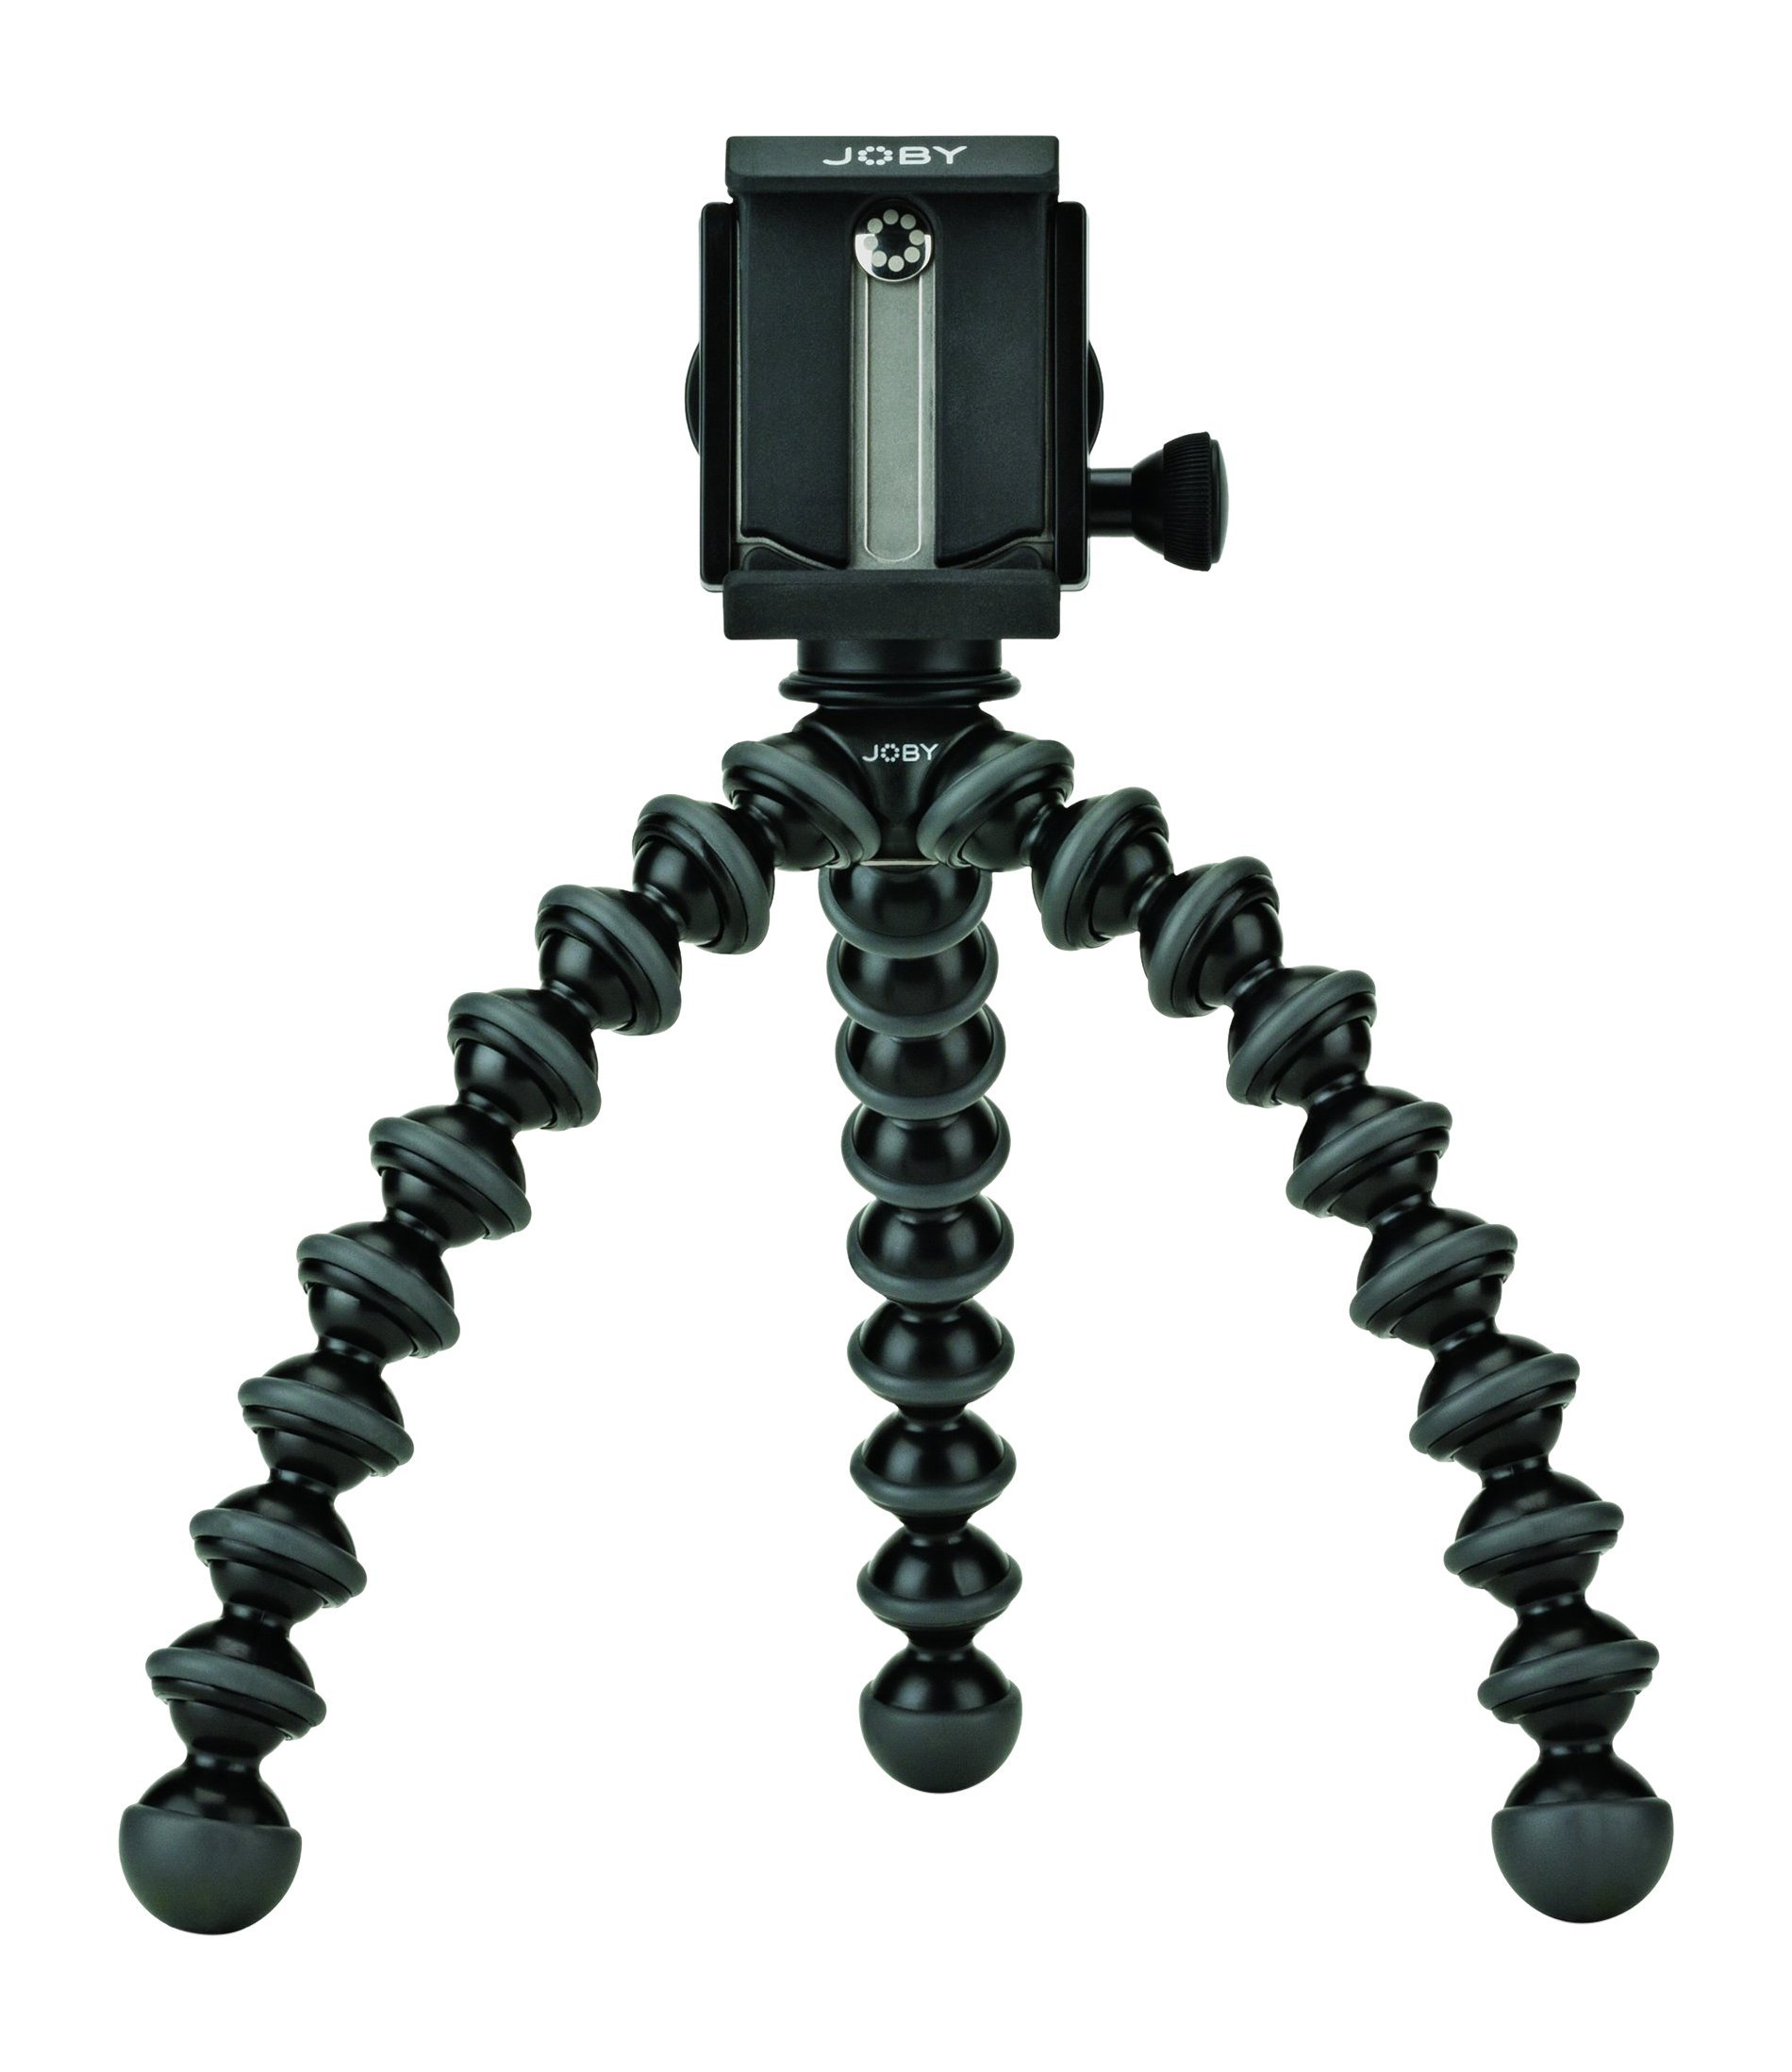 GripTight GorillaPod Stand PRO: Premium Clamping Mount and Tripod with Universal Smartphone Compatibility for iPhone SE to iPhone 8 Plus, Google Pixel, Samsung Galaxy S8 and More by Joby